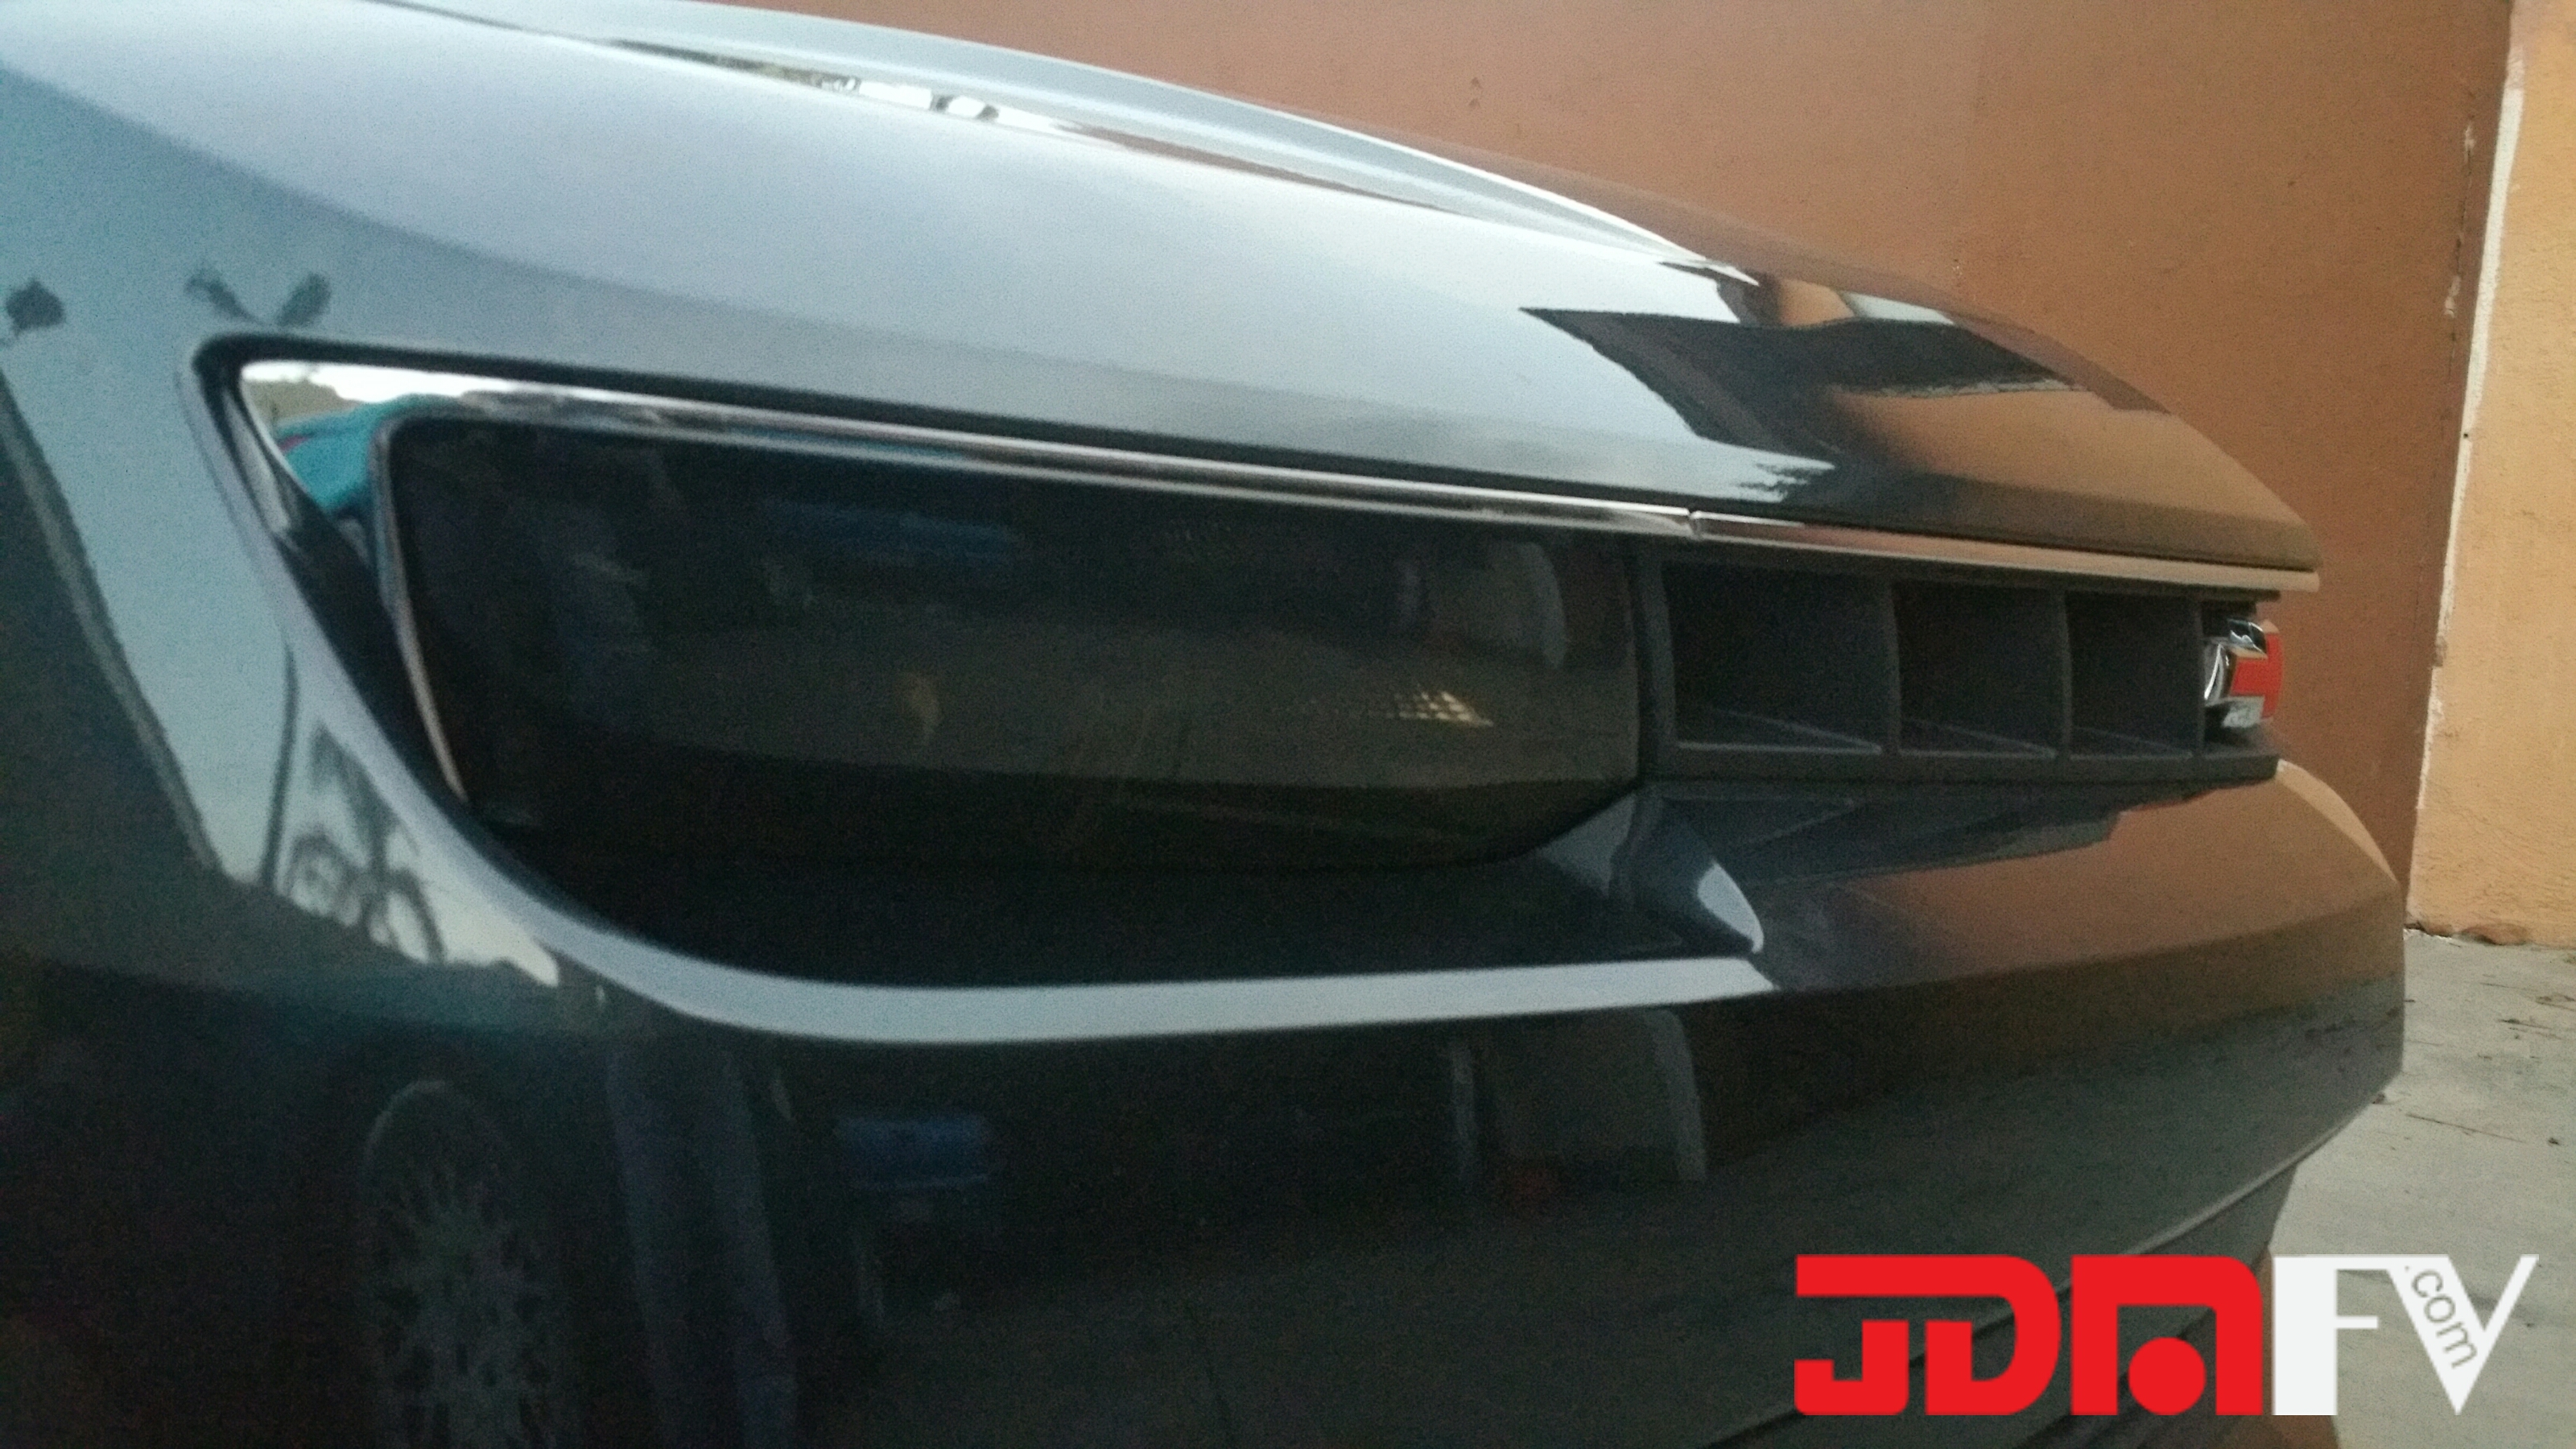 2015 Chevrolet Camaro Precut Tail Light Head Overlays Tint